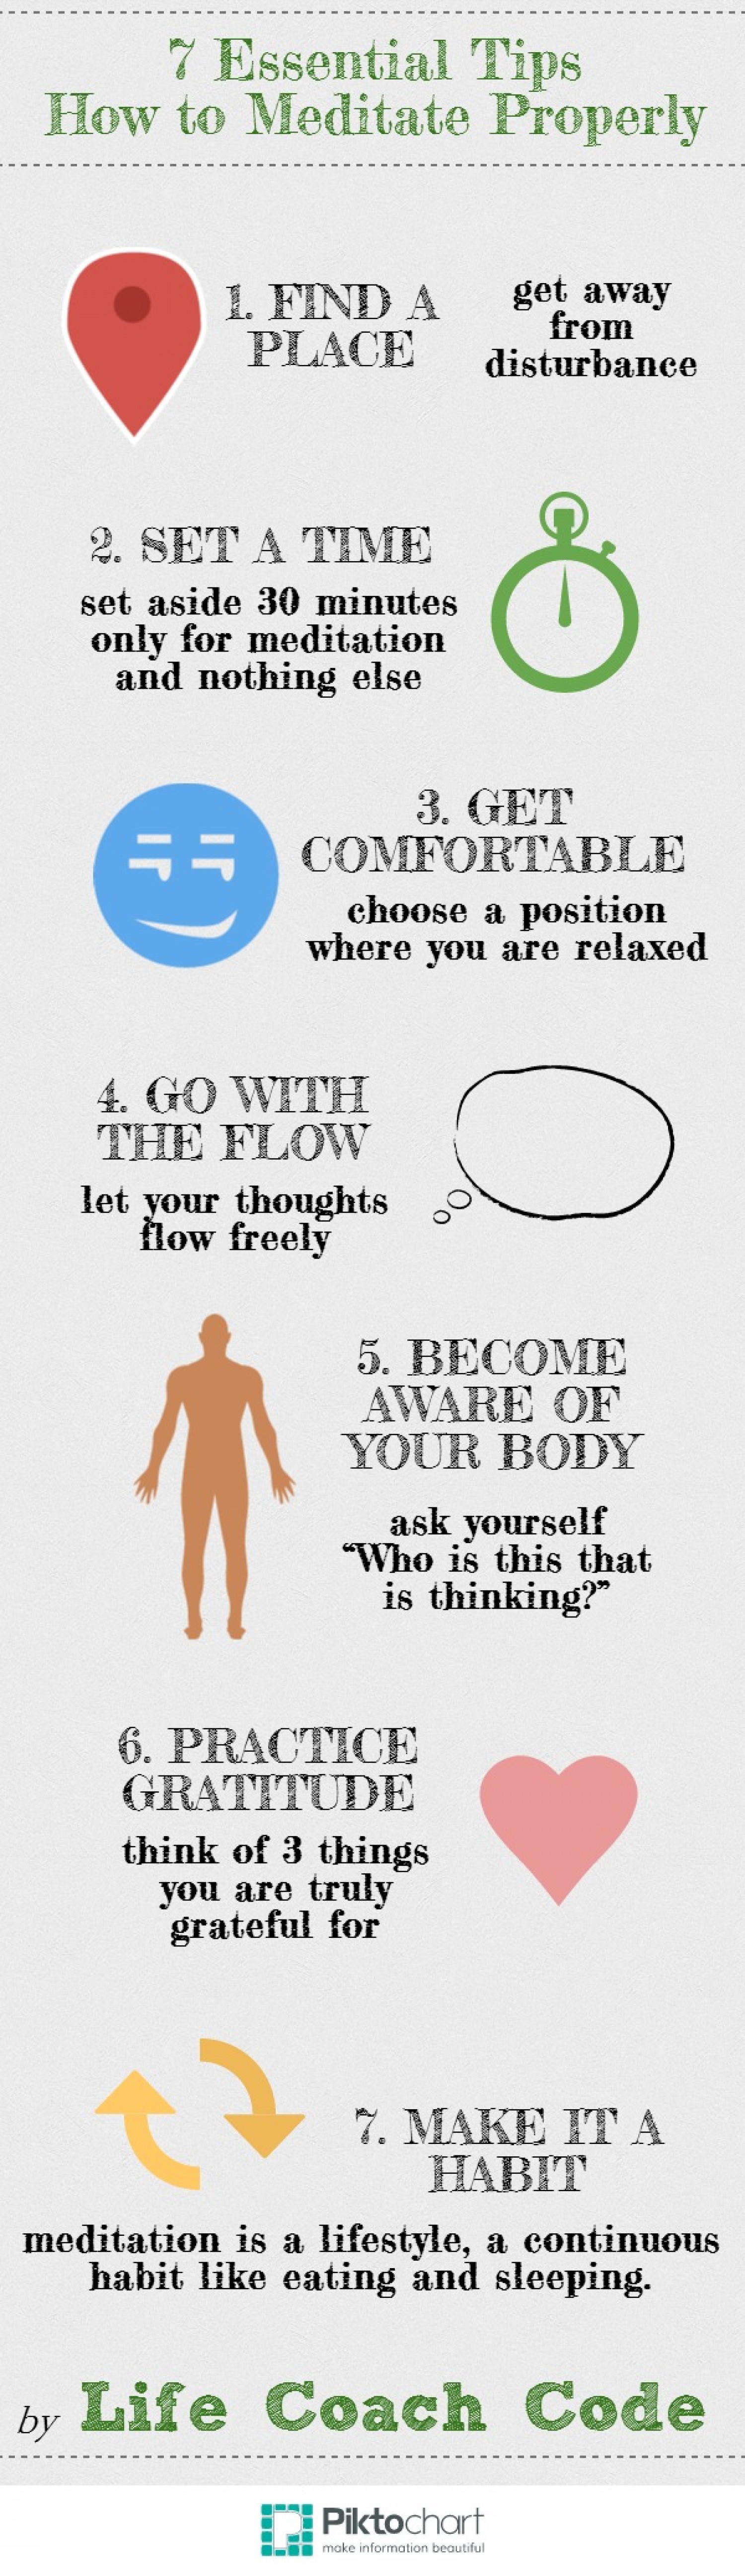 7 Essential Tips How to Meditate Properly